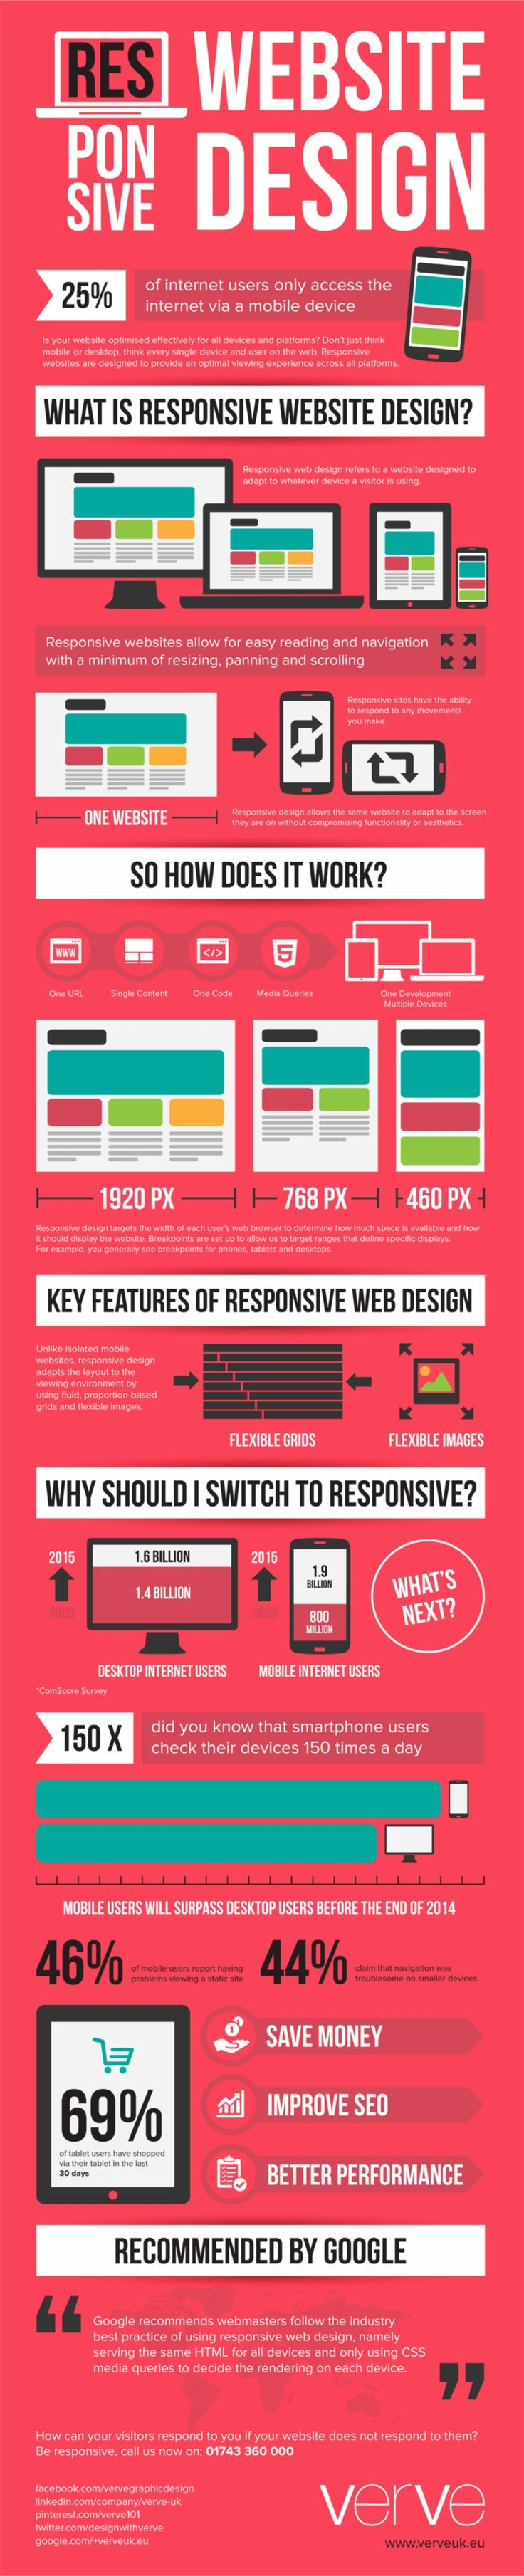 Responsive Website Design #Infographic